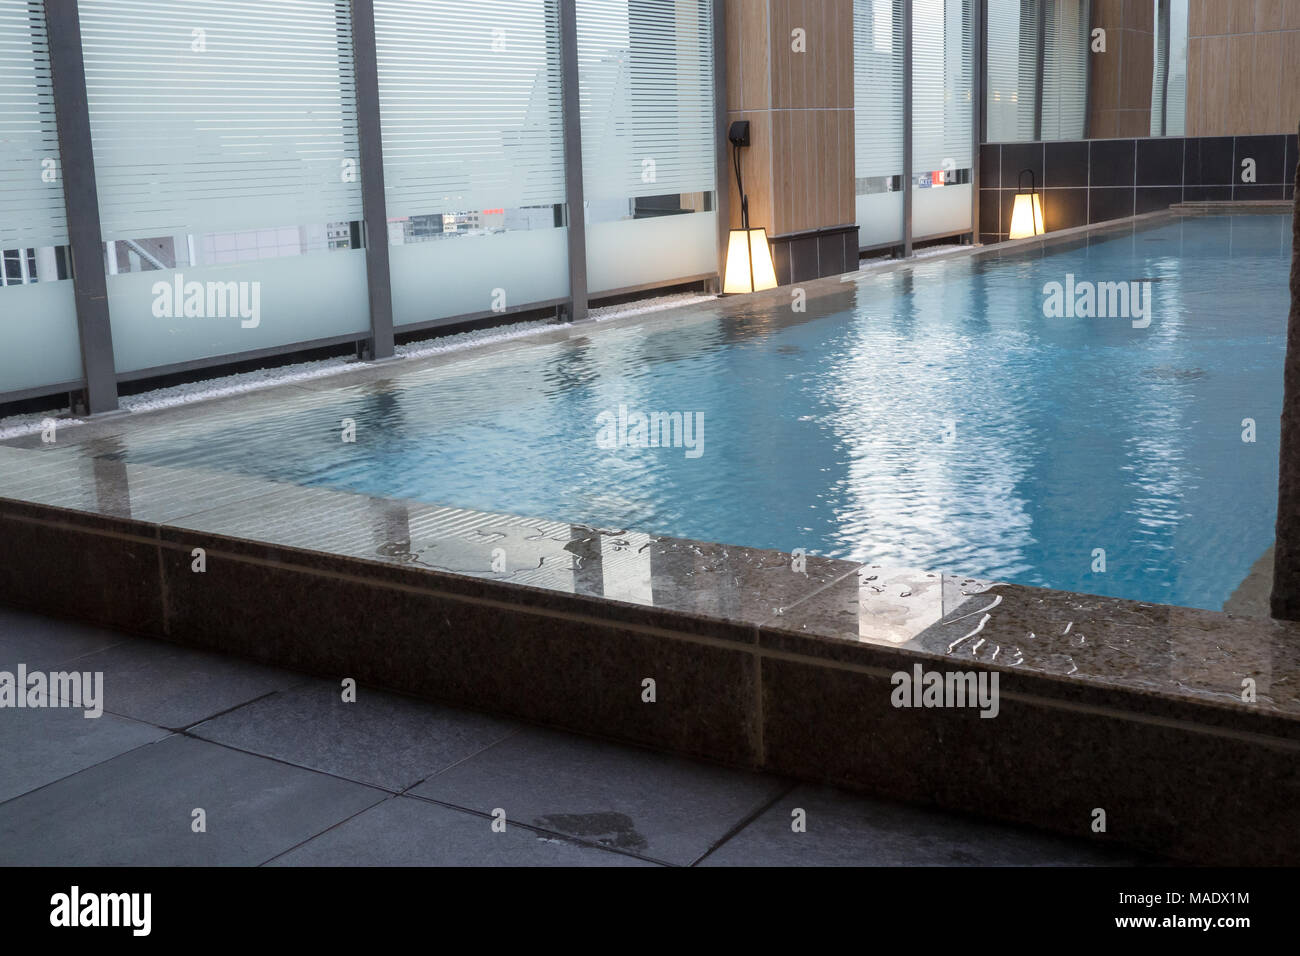 Japanese Bath Leisure Stock Photos & Japanese Bath Leisure Stock ...